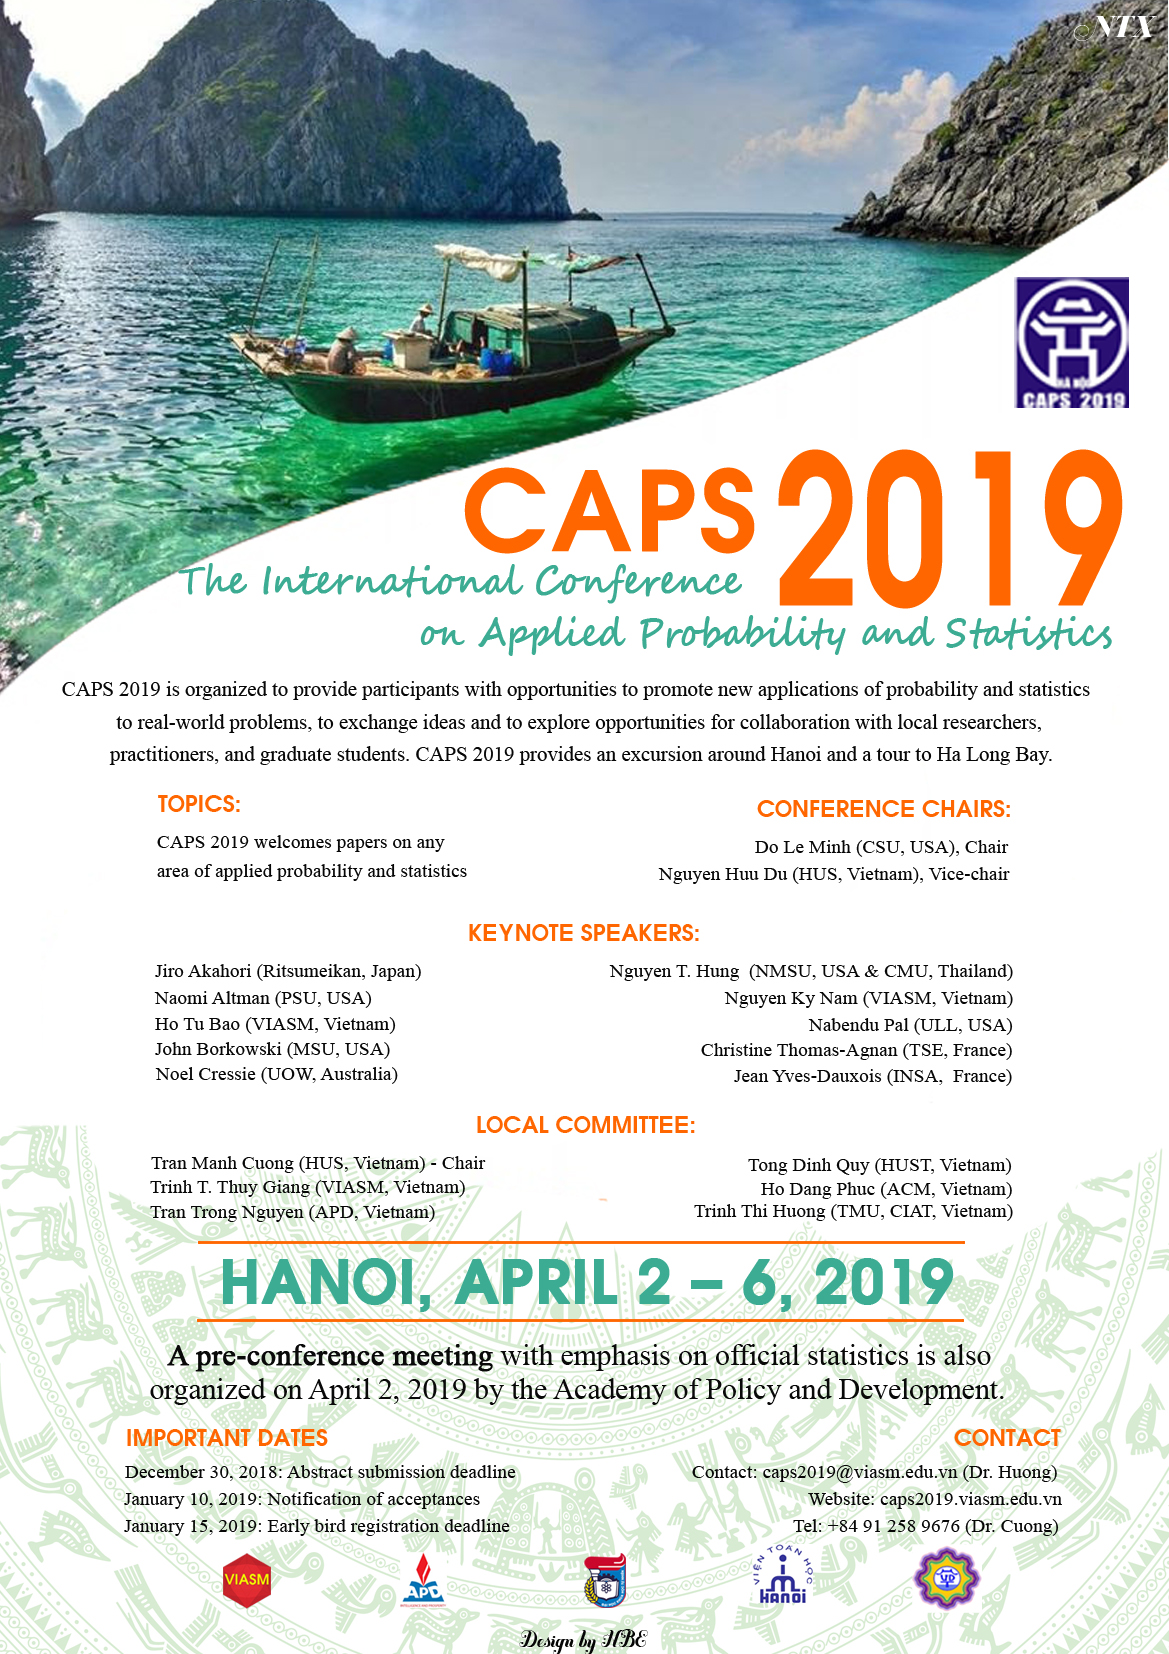 CAPS 2019 Conference